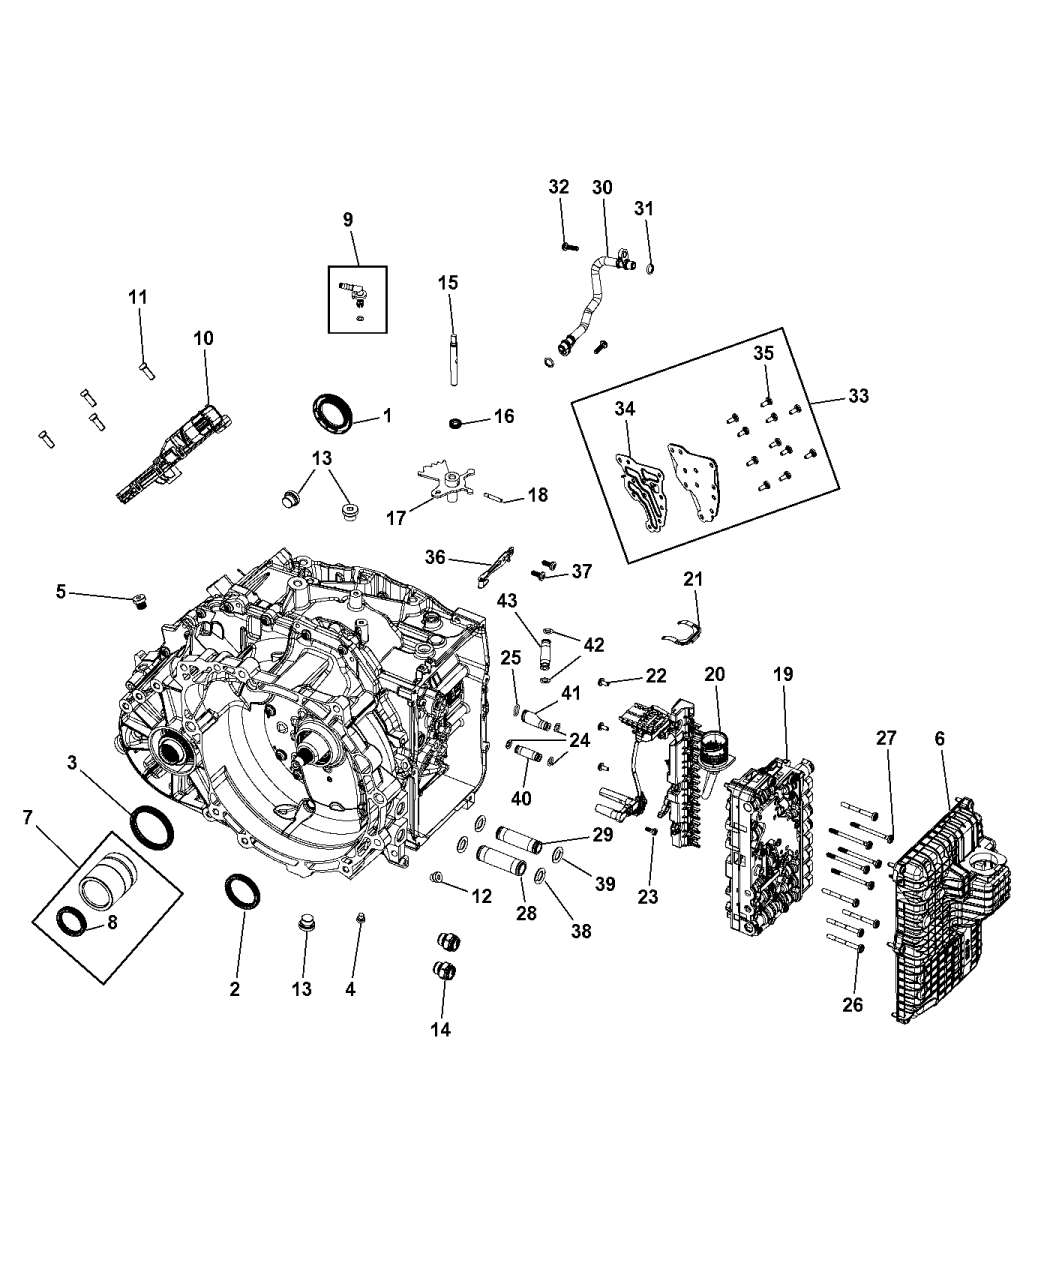 Jeep Renegade Wiring Harness Diagram on jeep cj wiring diagram, jeep cherokee sport wiring diagram, jeep wrangler yj wiring diagram, jeep hurricane wiring diagram, jeep commander wiring diagram, jeep wagoneer wiring diagram,